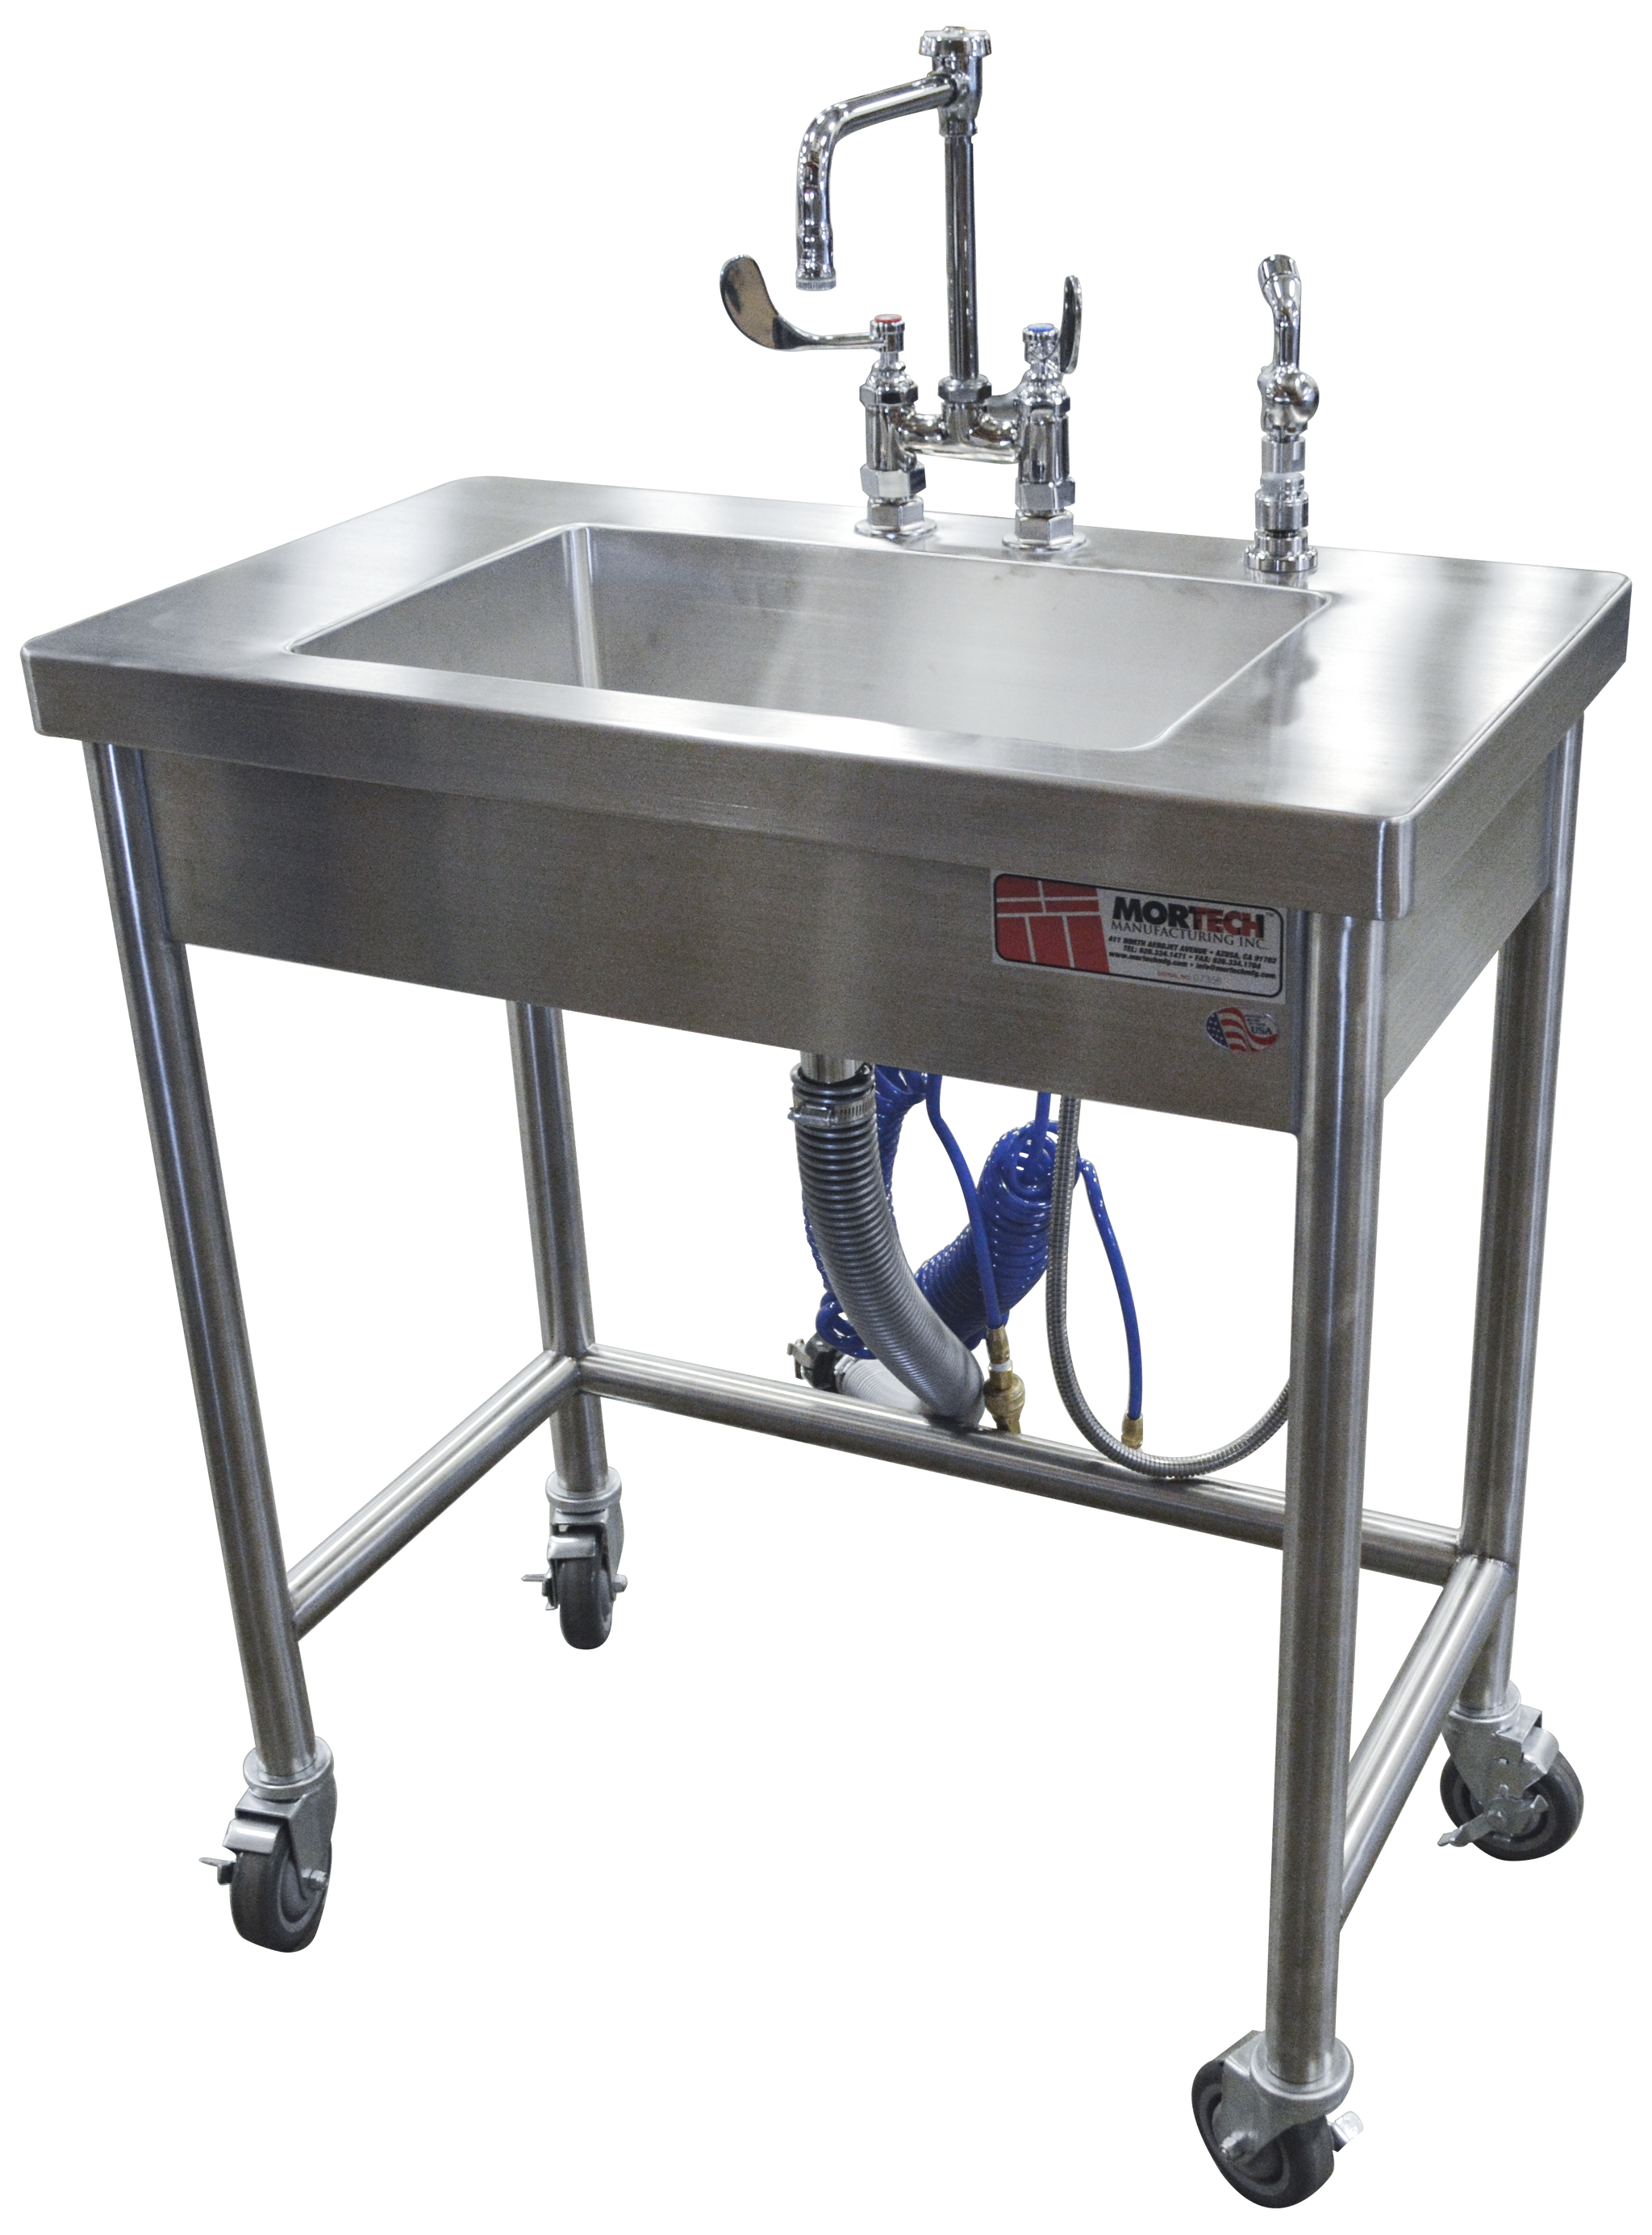 Mobile Wash Station-Sink Station-Mortech Manufacturing Company Inc. Quality Stainless Steel Autopsy, Morgue, Funeral Home, Necropsy, Veterinary / Anatomy, Dissection Equipment and Accessories